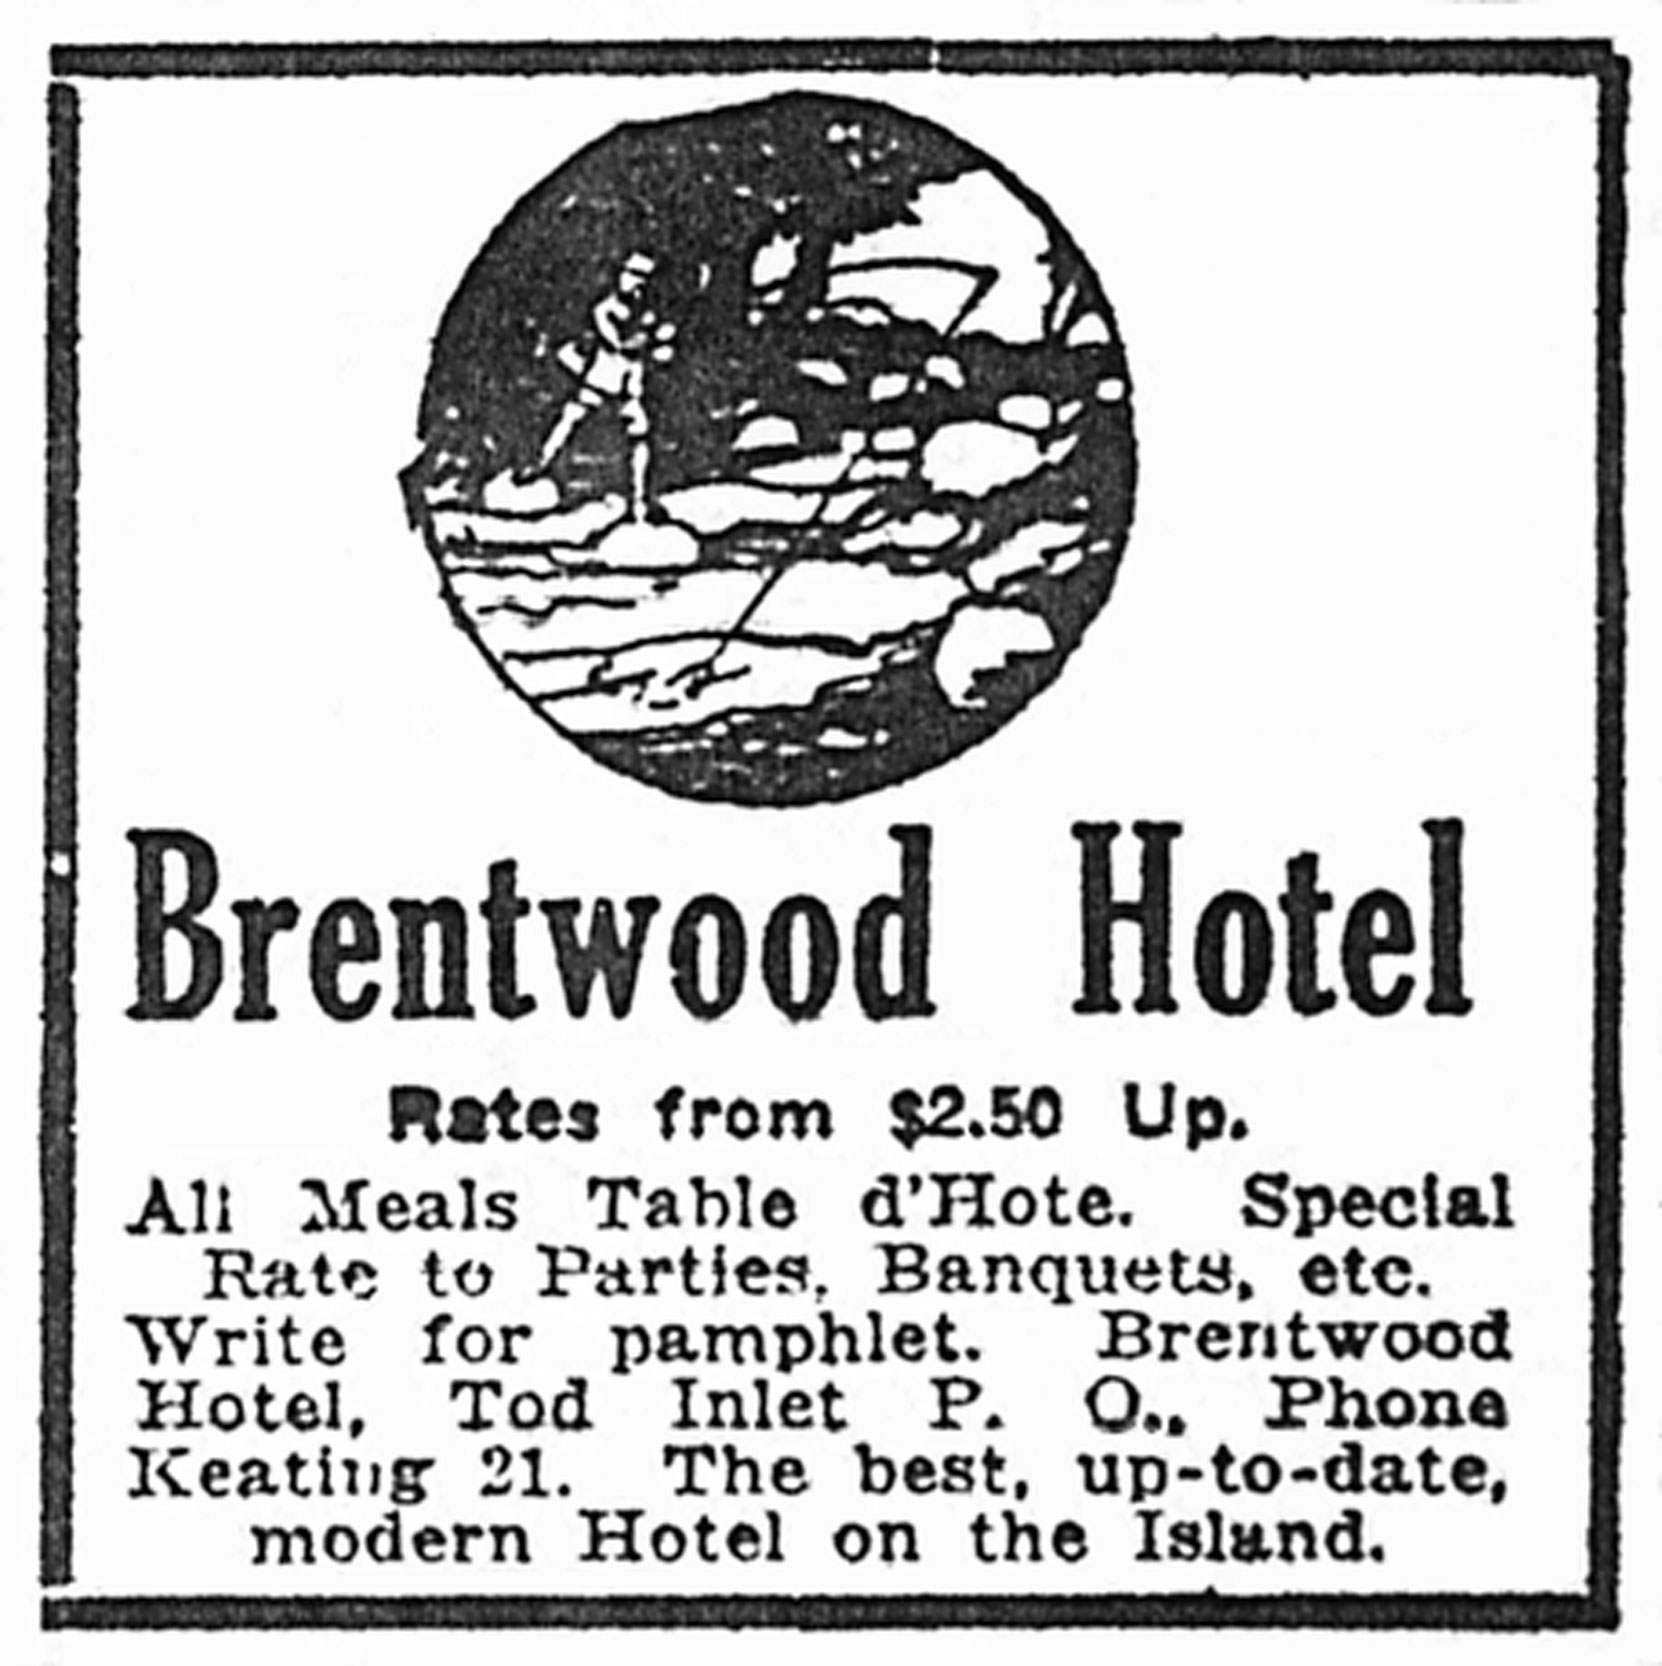 Victoria newspaper advertisement for Brentwood Hotel, July 1921 (Author's collection)